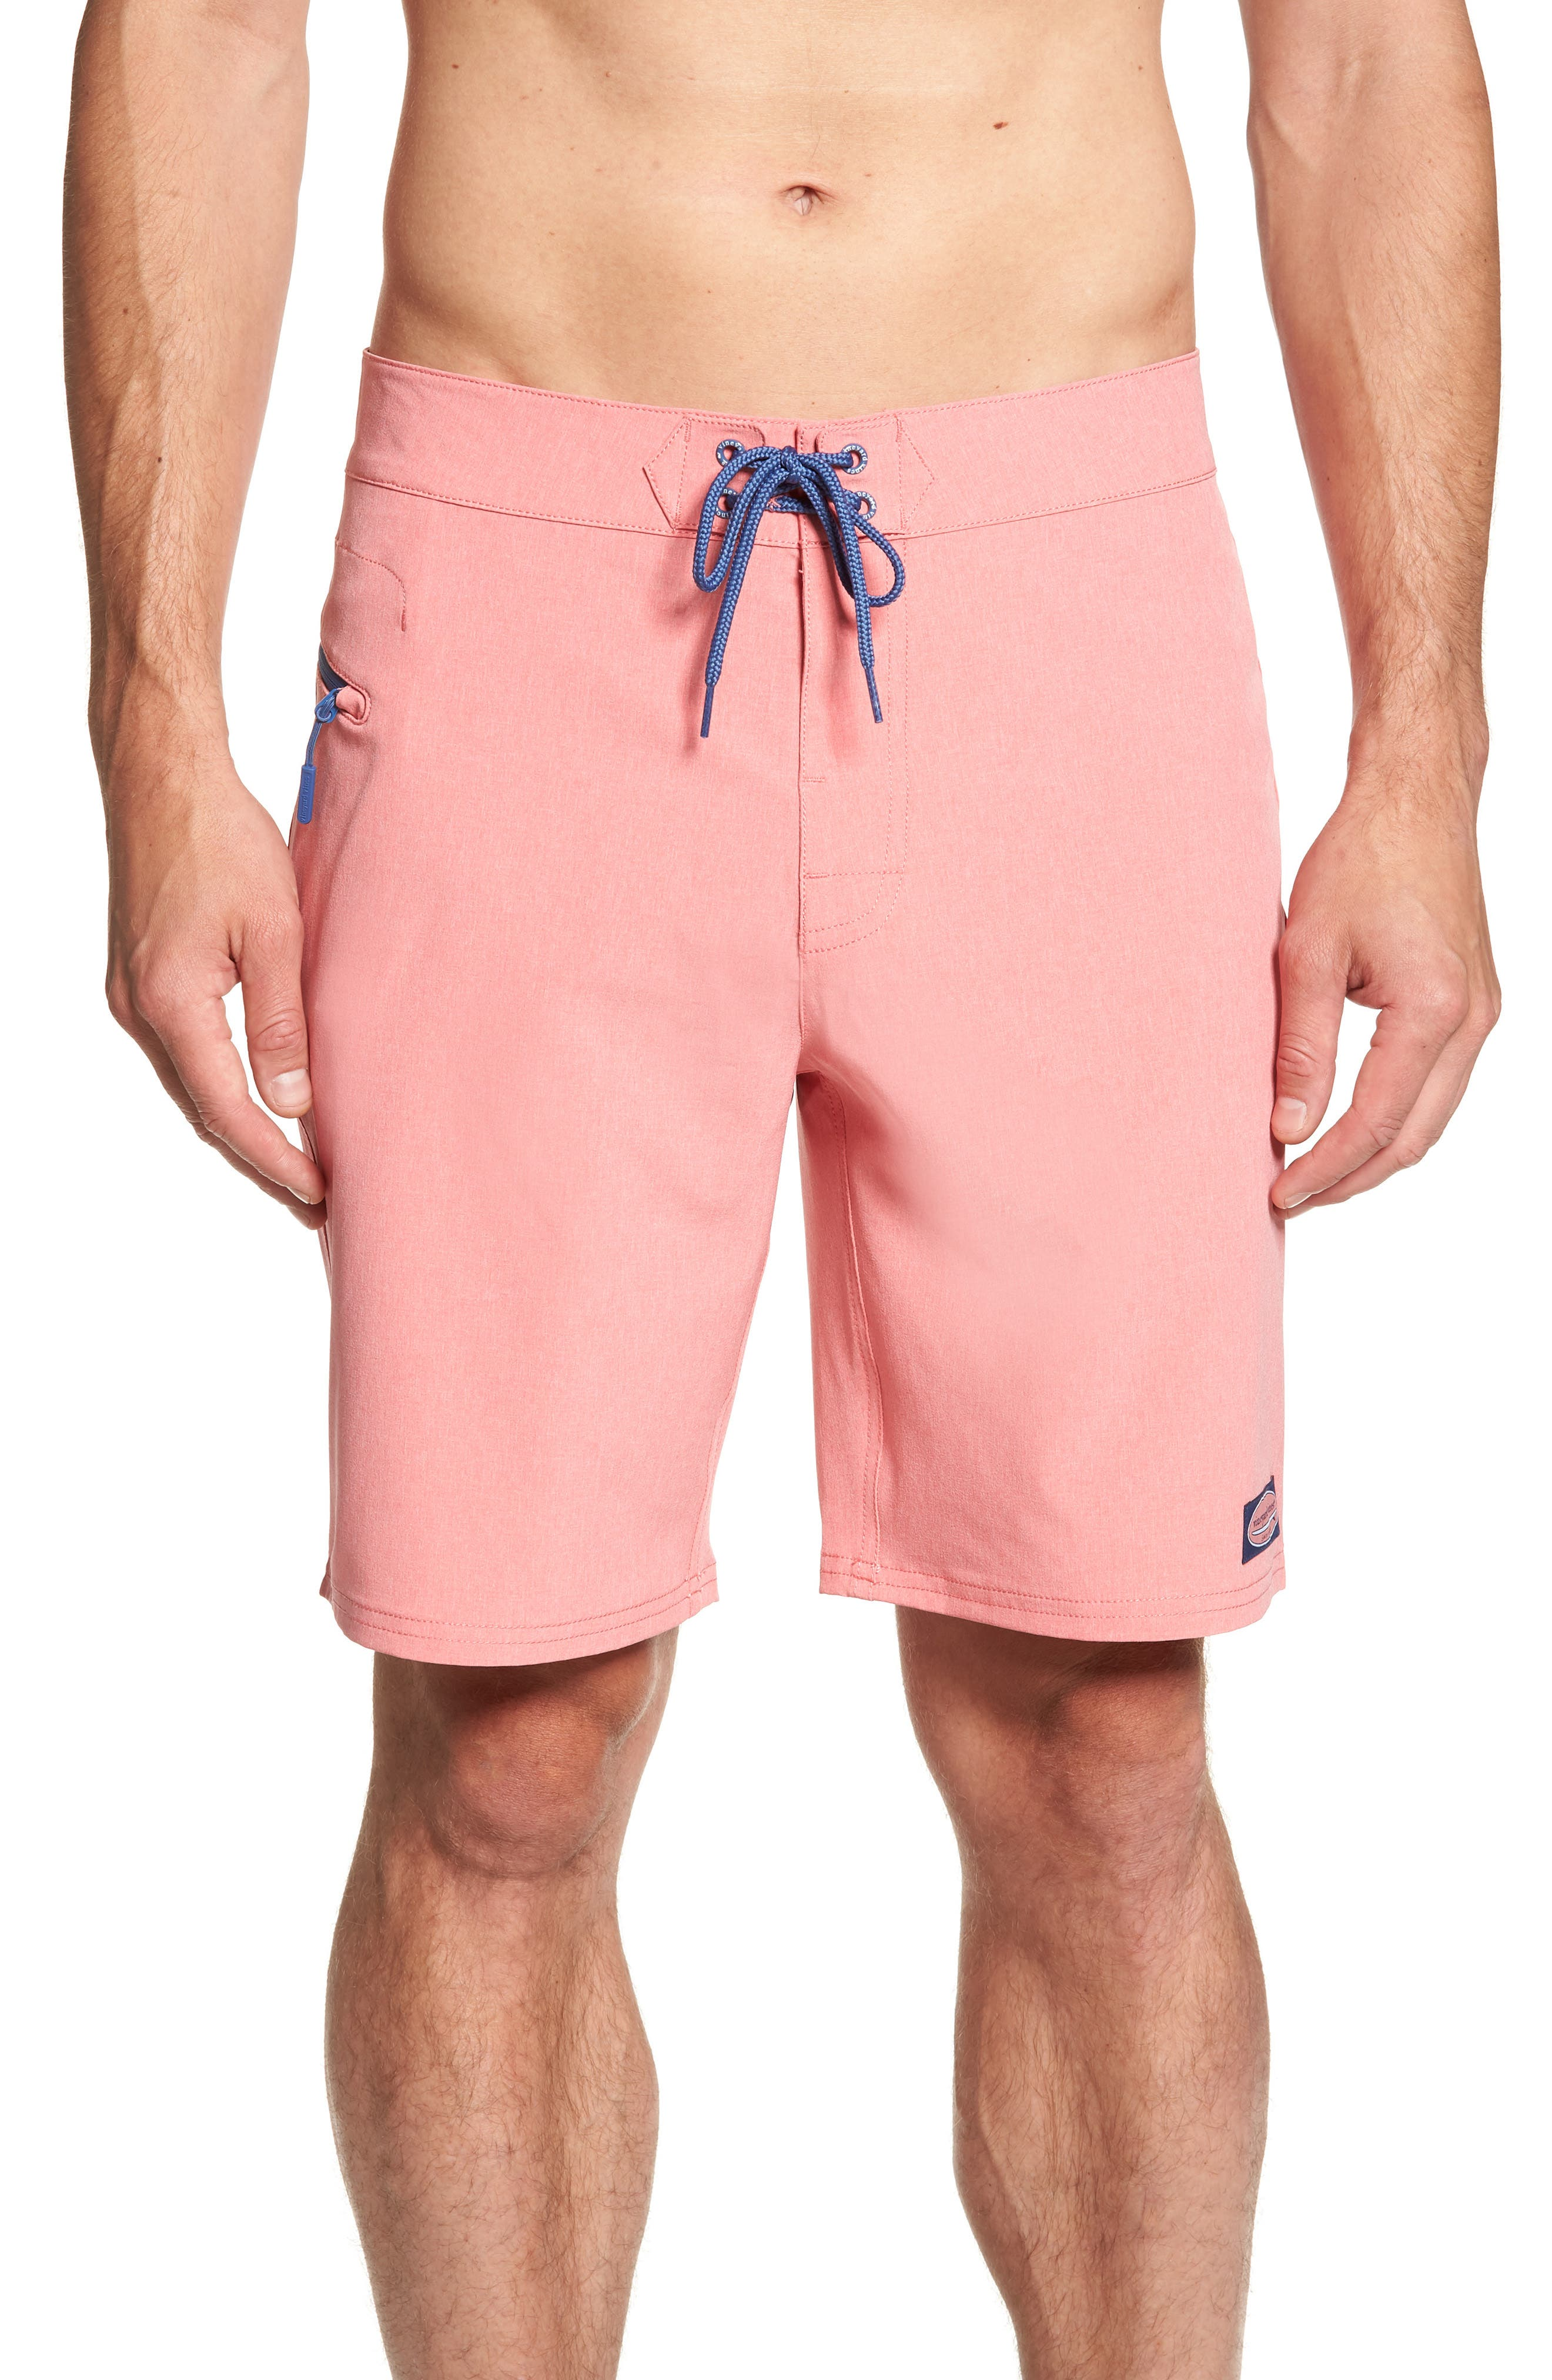 Heather Stretch Board Shorts,                         Main,                         color, LOBSTER REEF